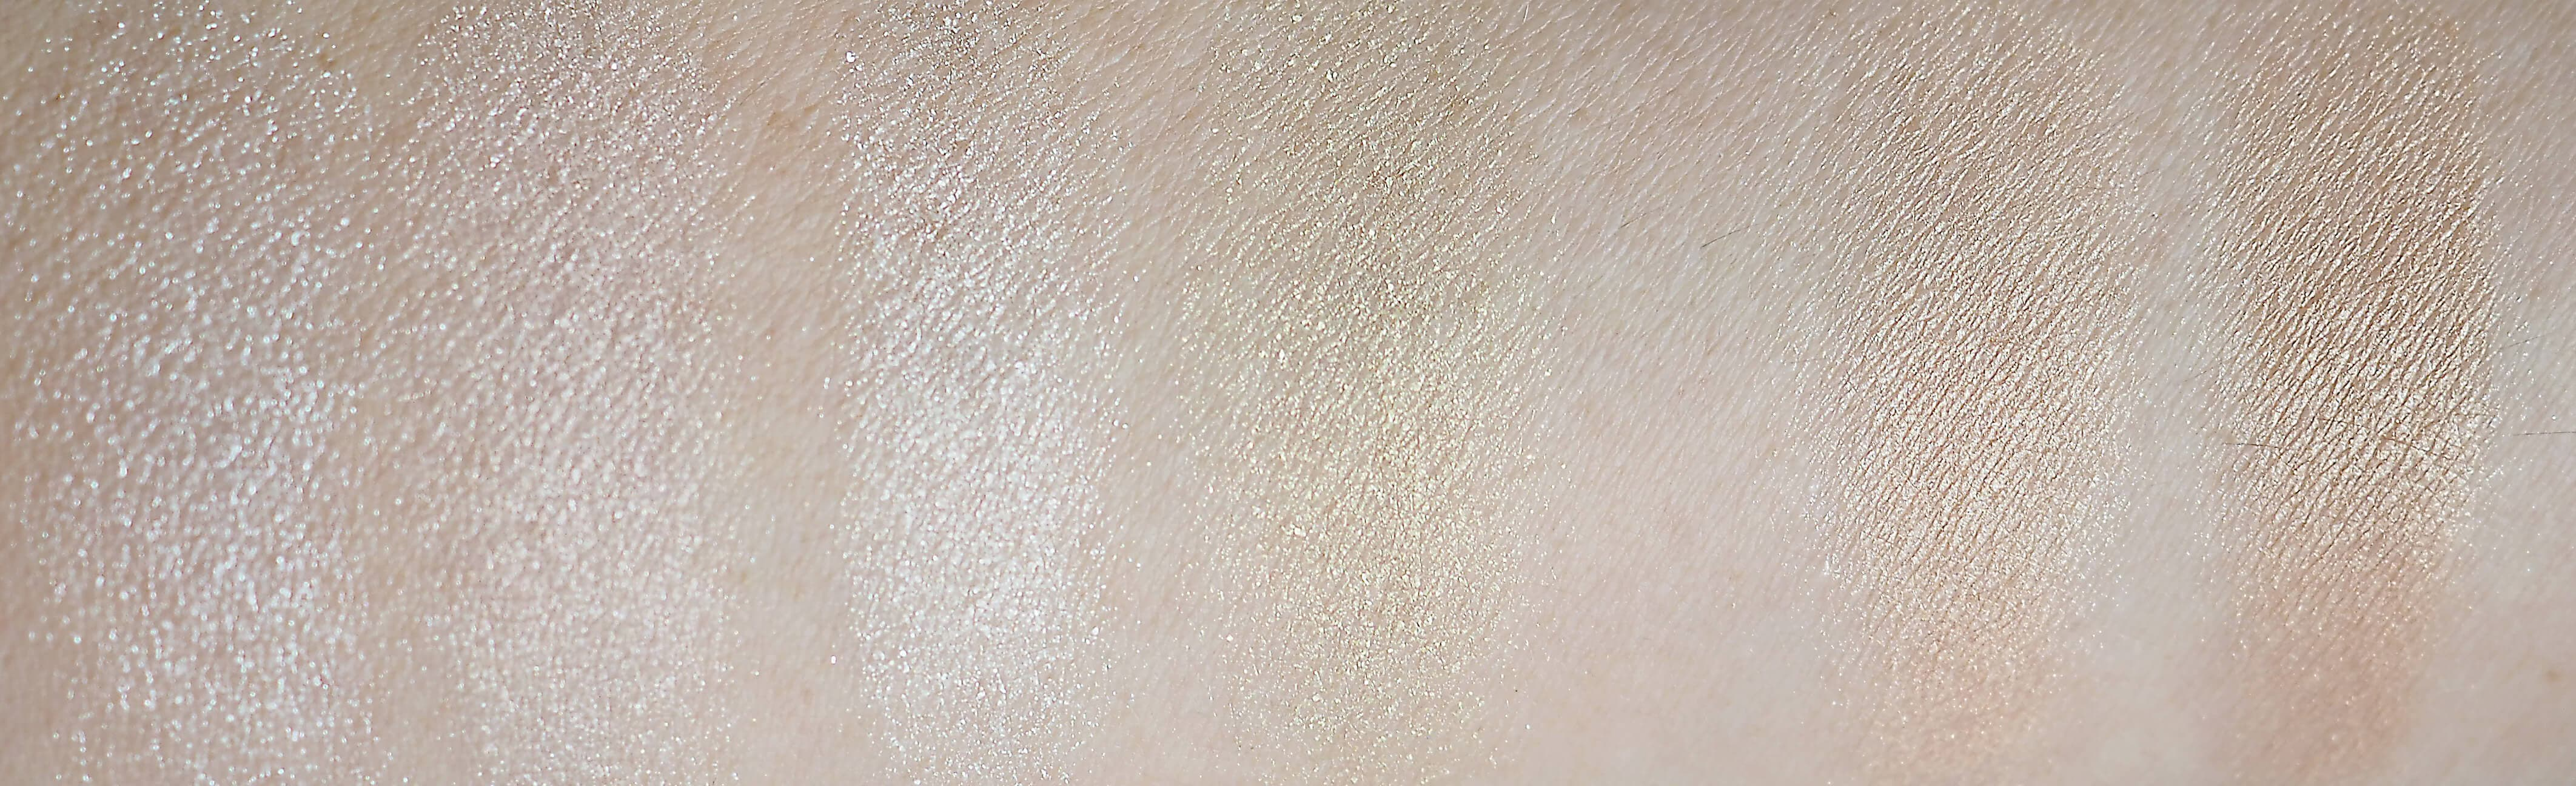 Test W7 GLOW FOR GLORY ILLUMINATING PALETTE